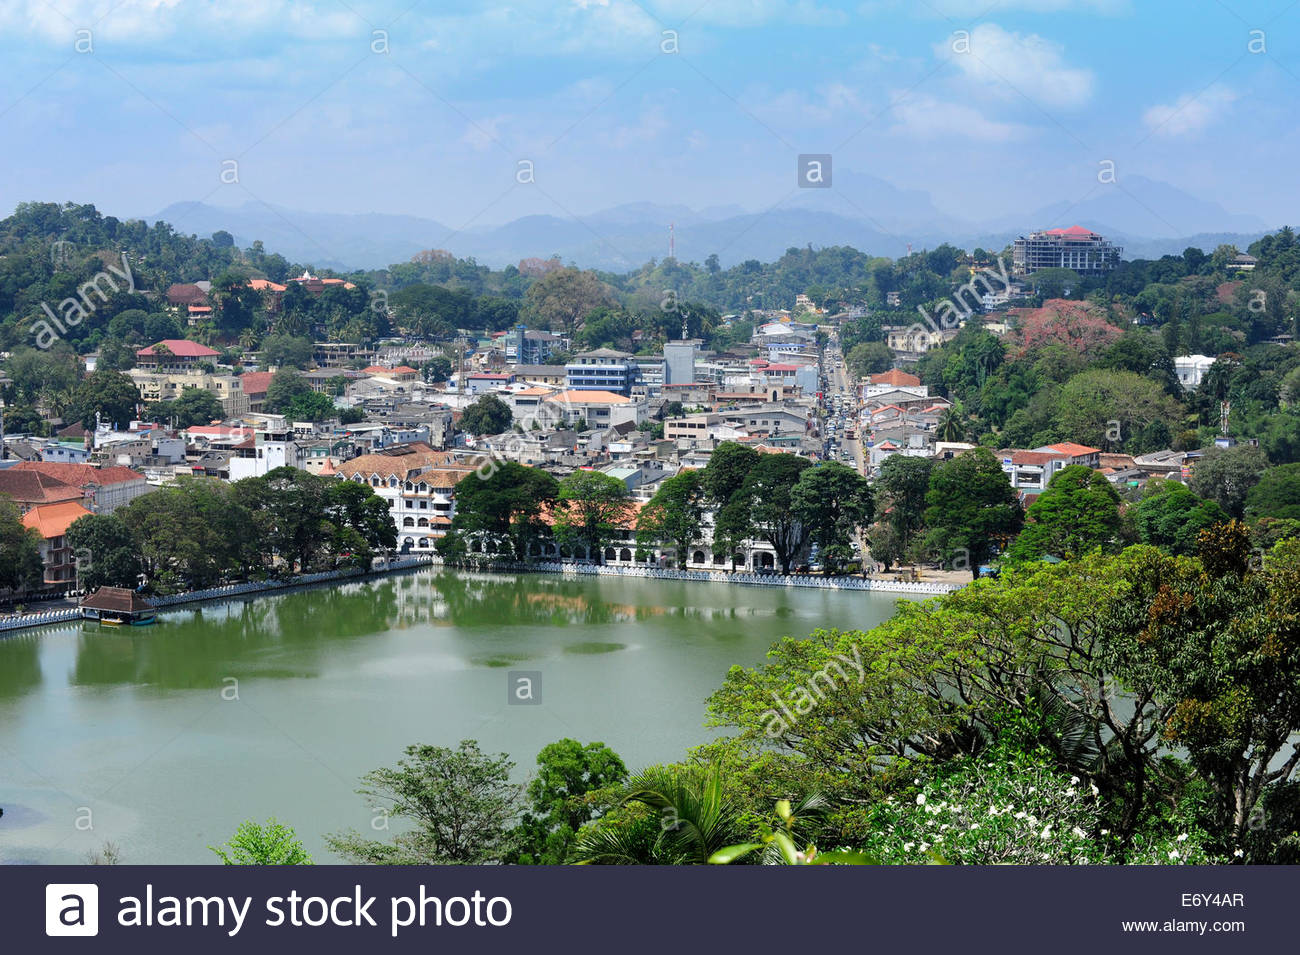 View towards Lake Kandy, an artificial lake in the city centre, Kandy, Central Province, Ceylon, Sri Lanka, Asia - Stock Image